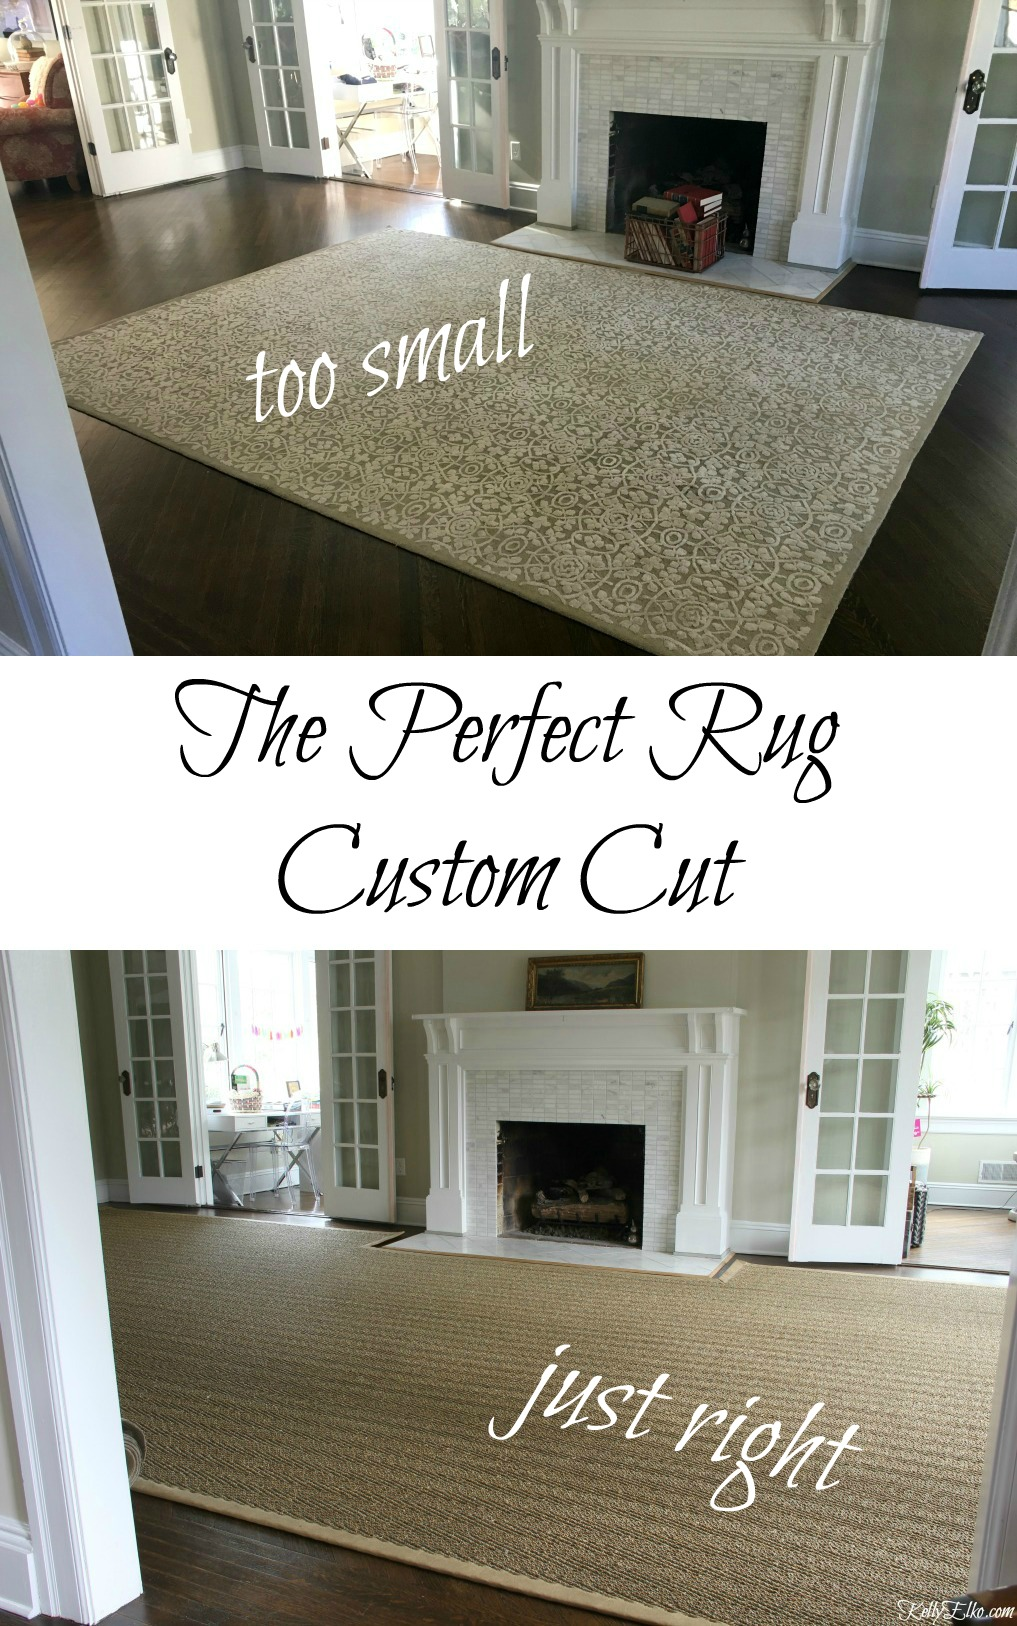 How to Get the Perfect Custom Cut Area Rugs for your Home - the perfect solution for large rooms kellyelko.com #sisal #rugs #decoratingtips #interiordesigntips #livingroomrugs #livingroomdecor #kellyelko